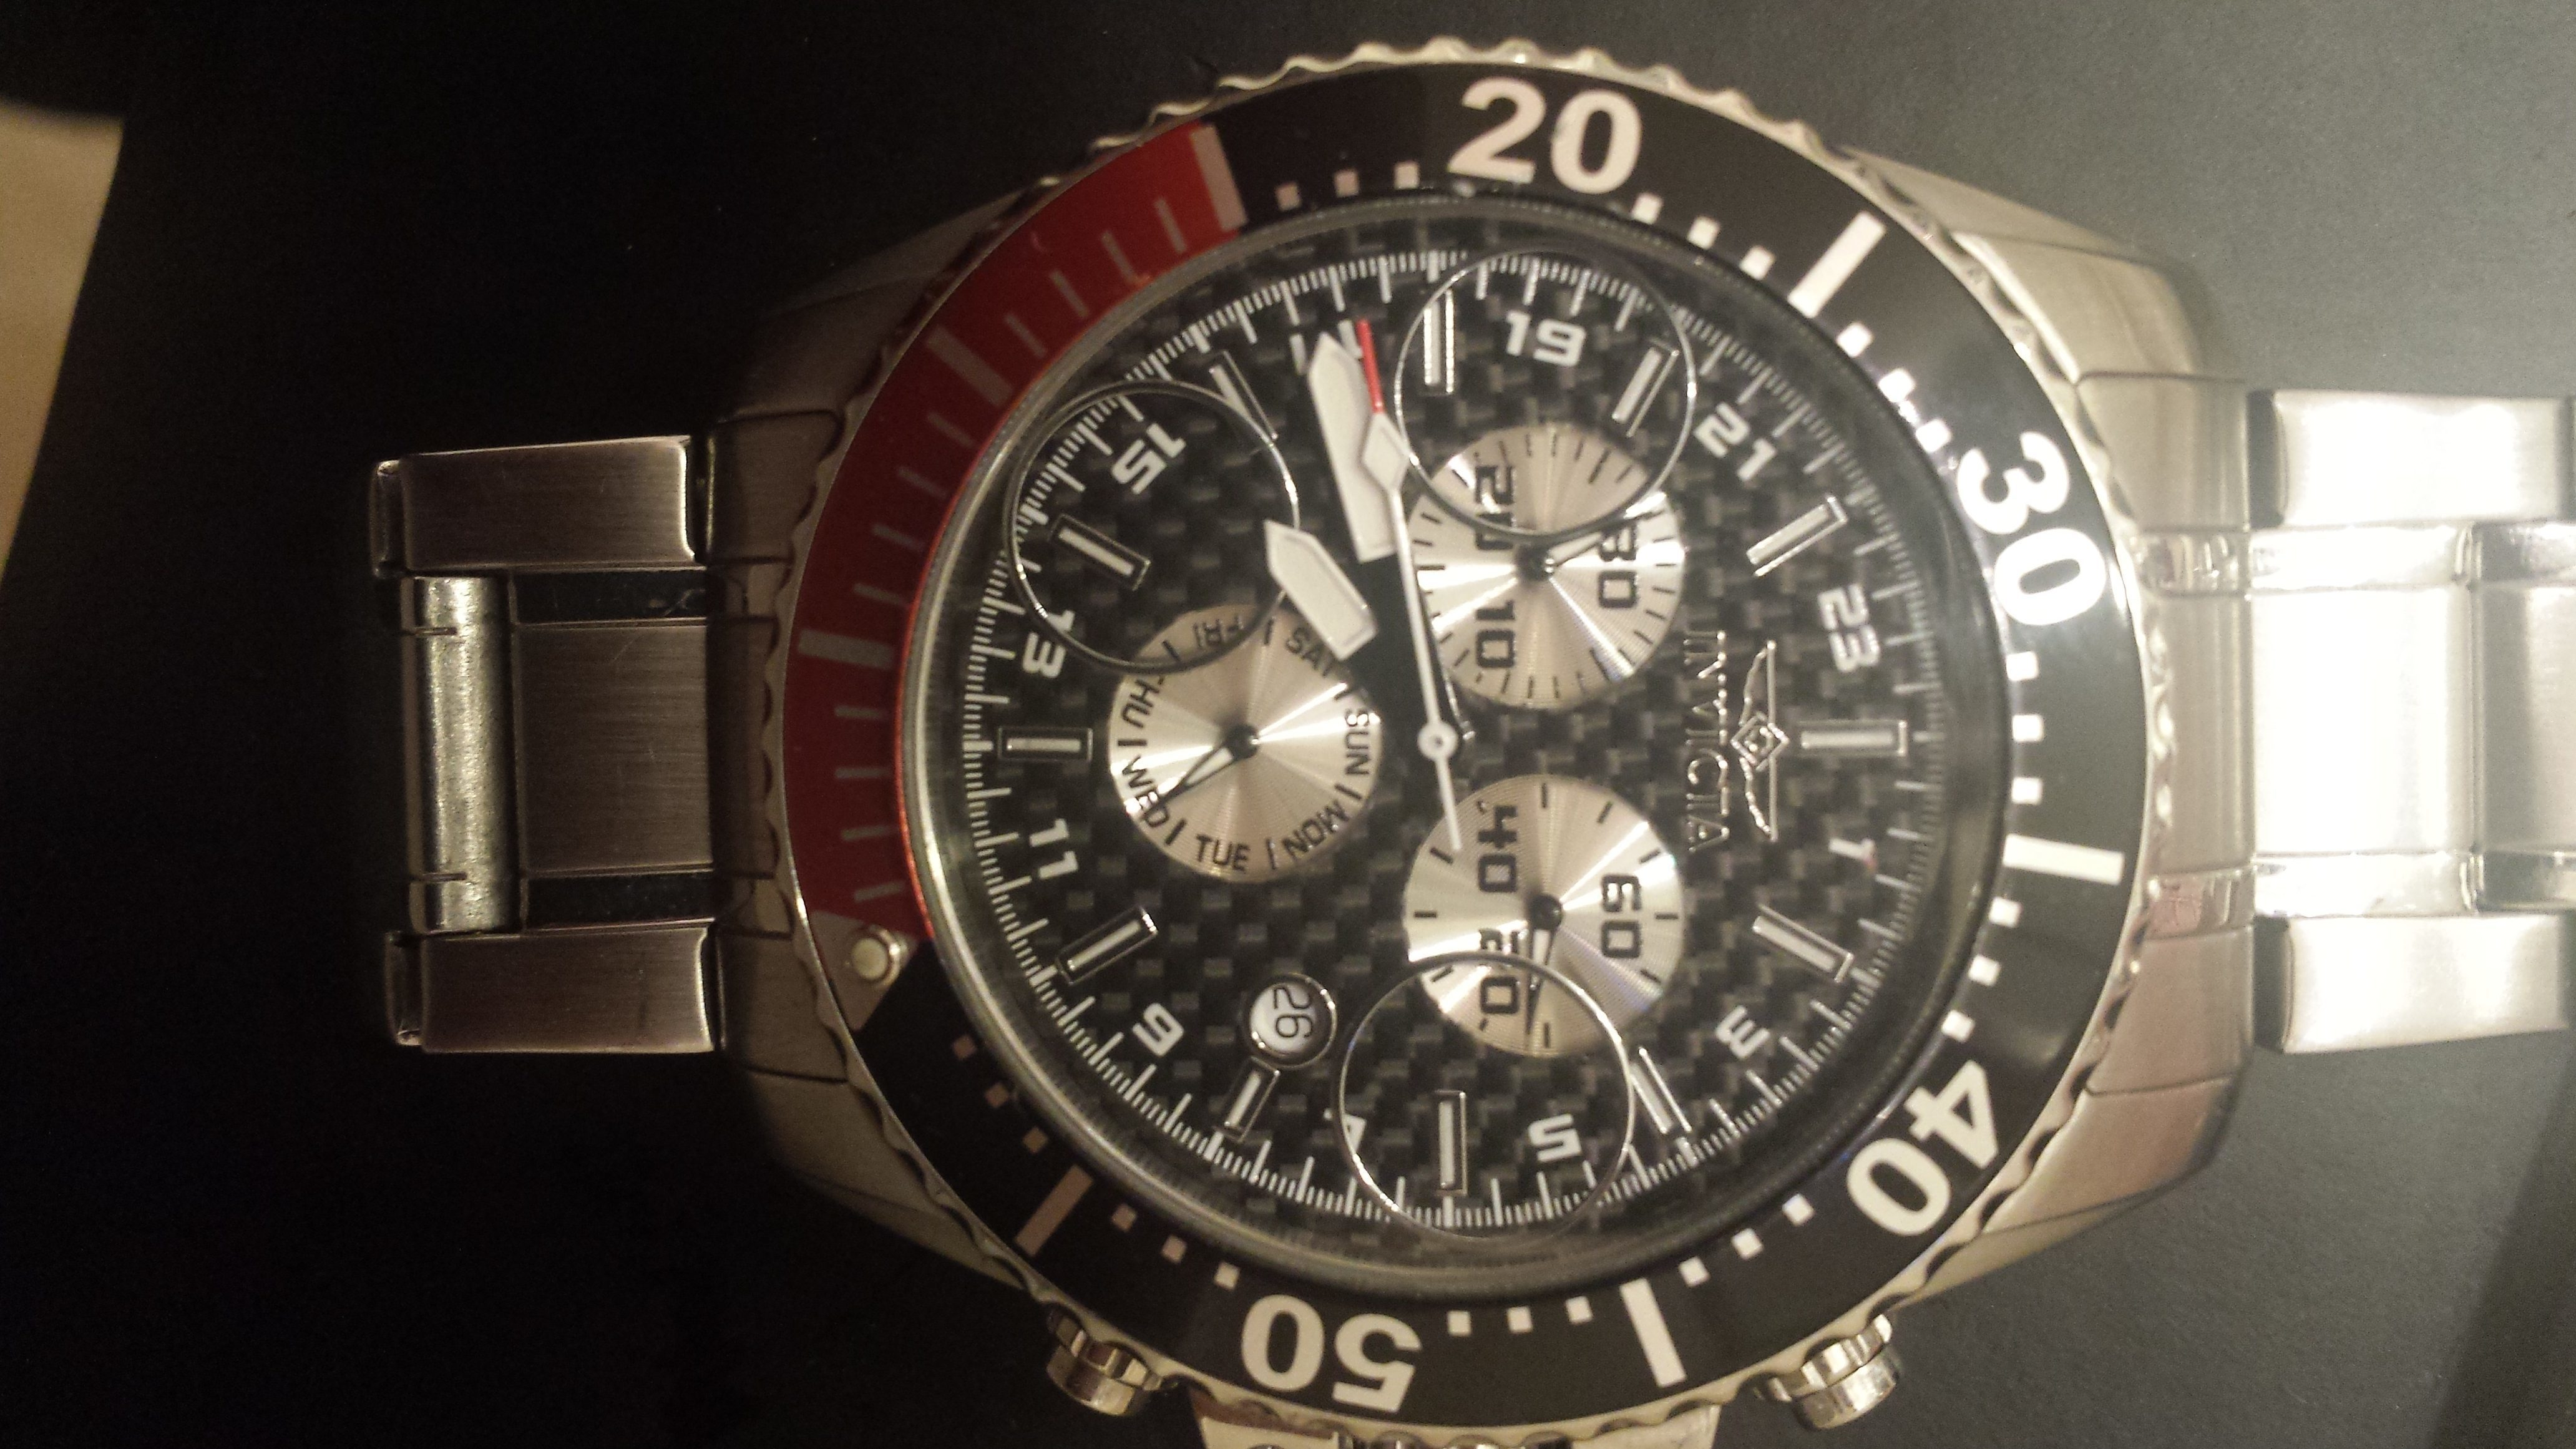 Top 176 Complaints And Reviews About Invicta Watches Page 4